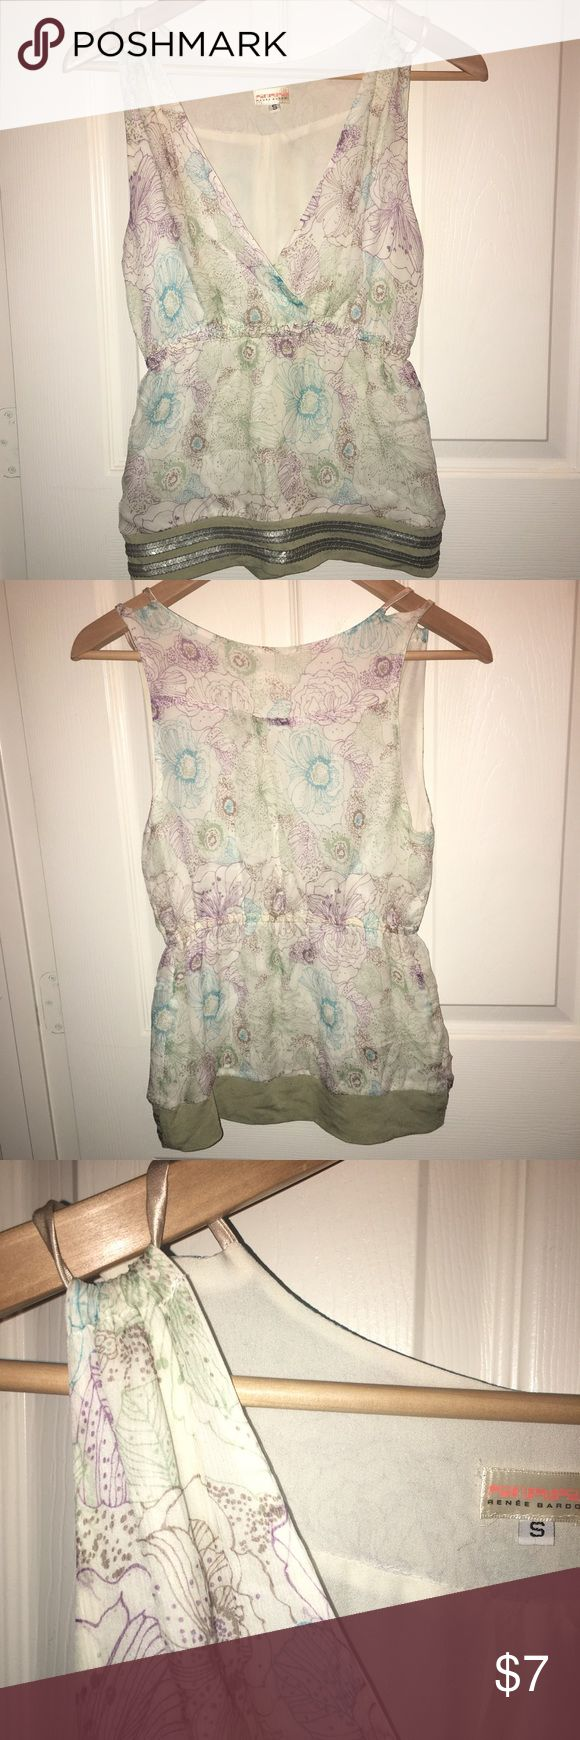 EUC Renèe Bardot top Sz S EUC Renèe Bardot top Sz S, ivory with lavender, turquoise, sage green floral print with sage/olive green hem with sequins. No snags, rips, stains Renee Bardot Tops Tank Tops